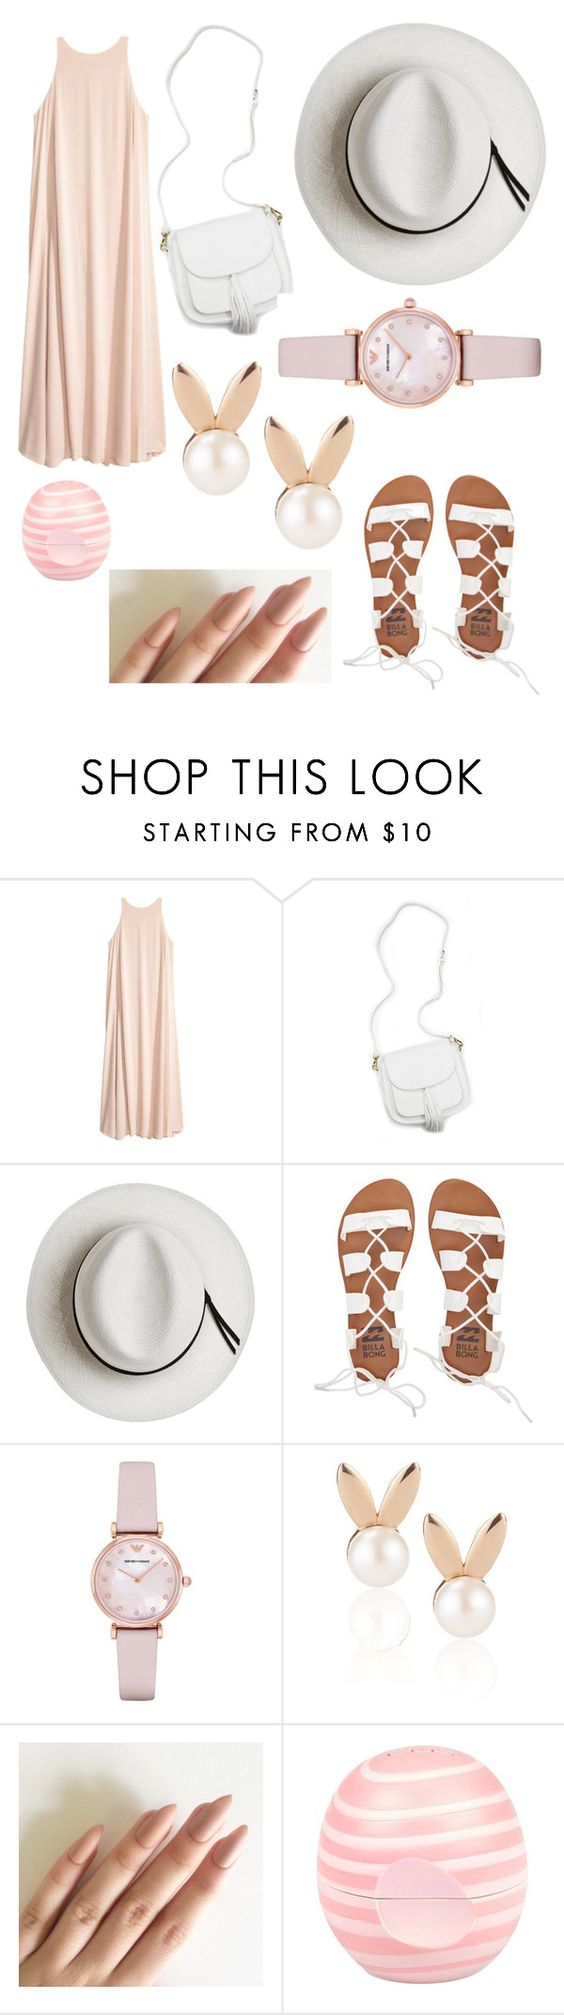 """"" by valevamps ❤ liked on Polyvore featuring beauty, Calypso Private Label, Billabong, Emporio Armani, Aamaya by priyanka and River Island"